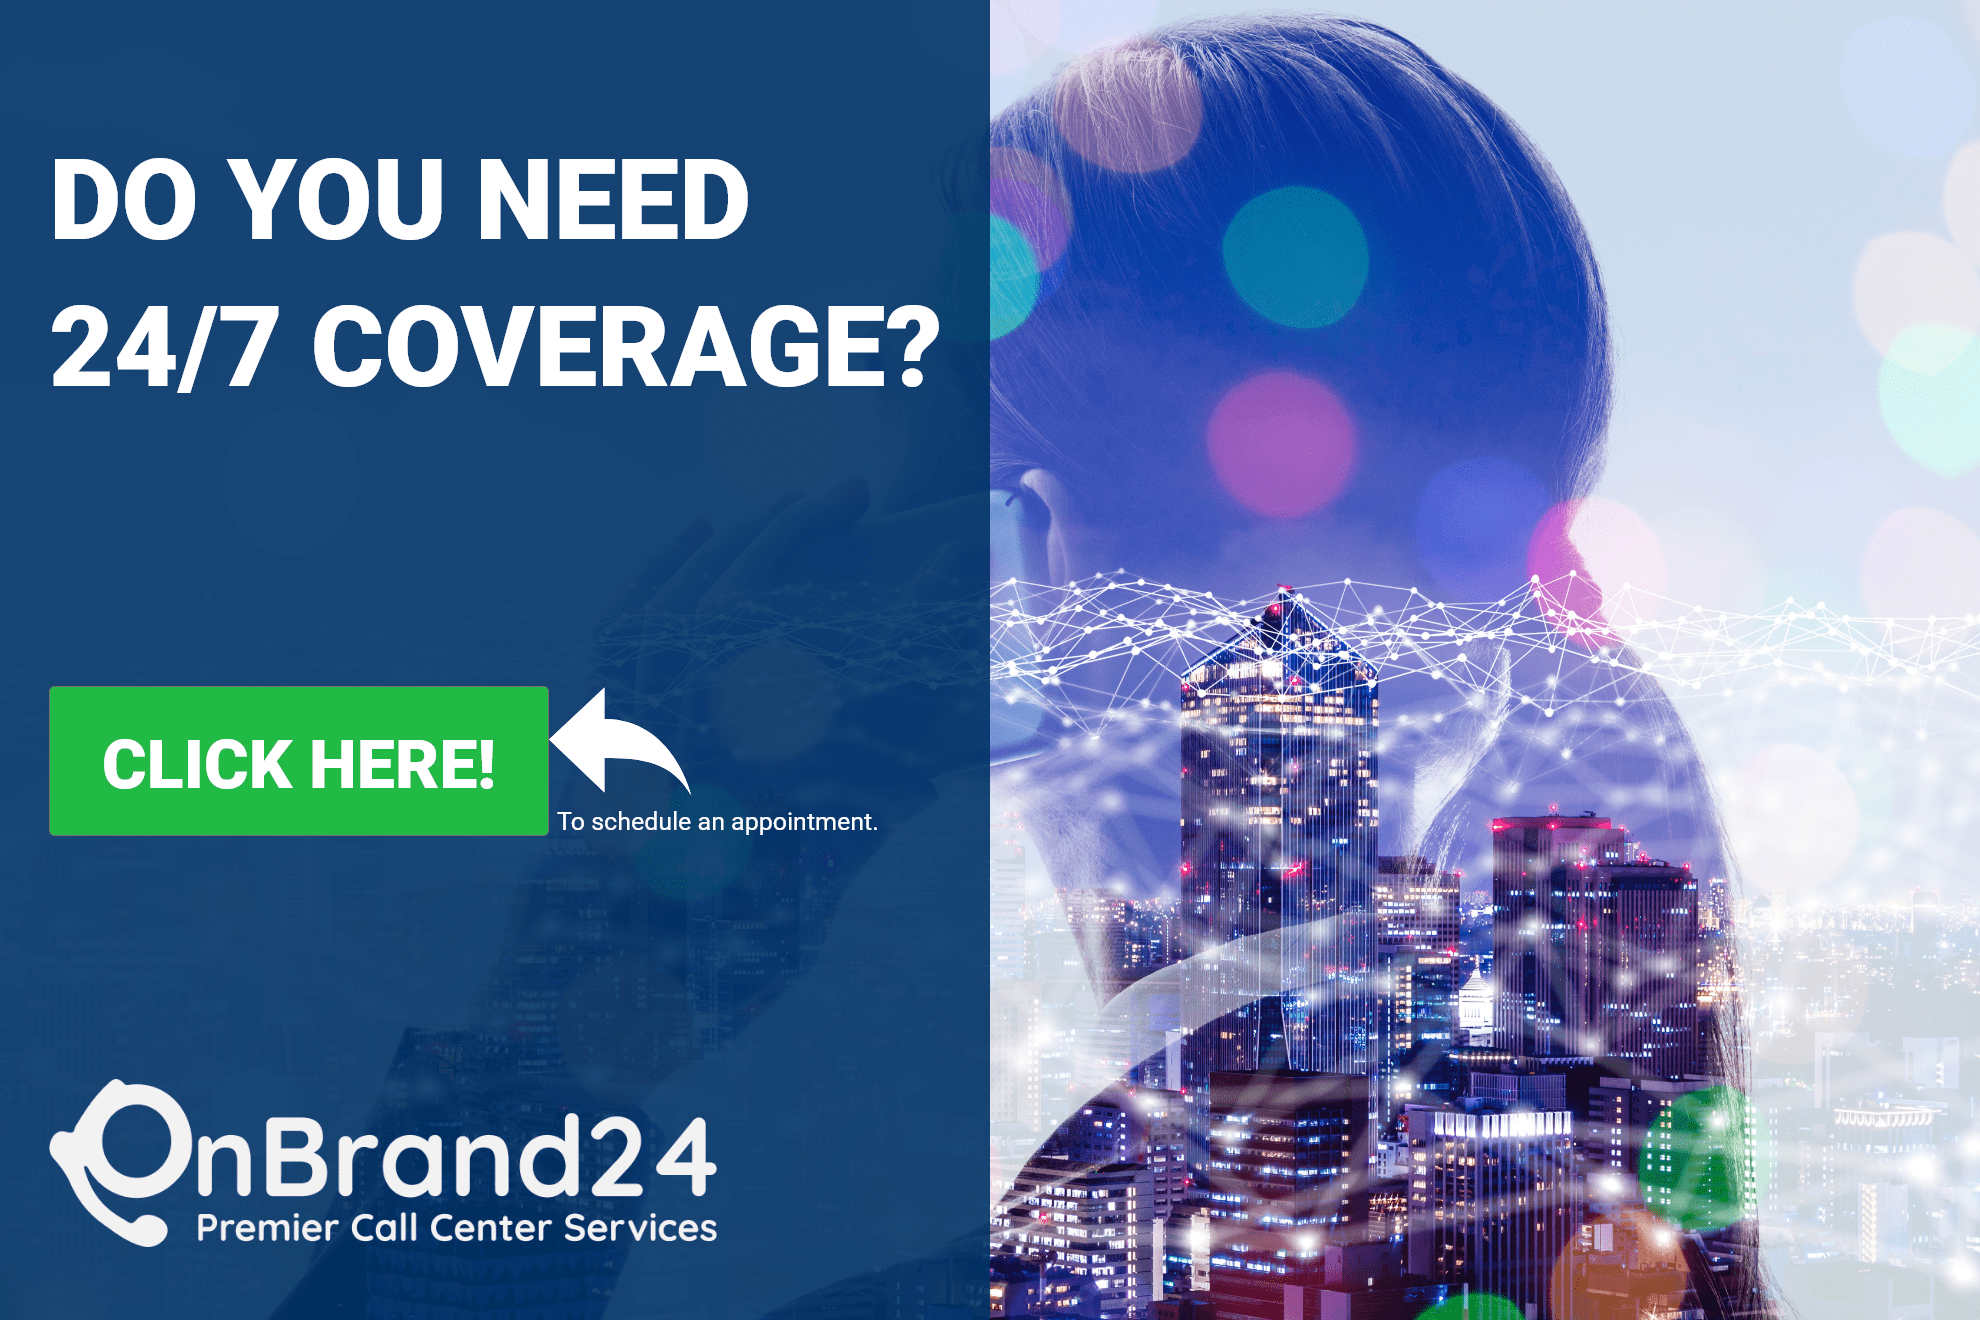 24/7 Call Center Service Coverage with OnBrand24 Premier Call Center Services